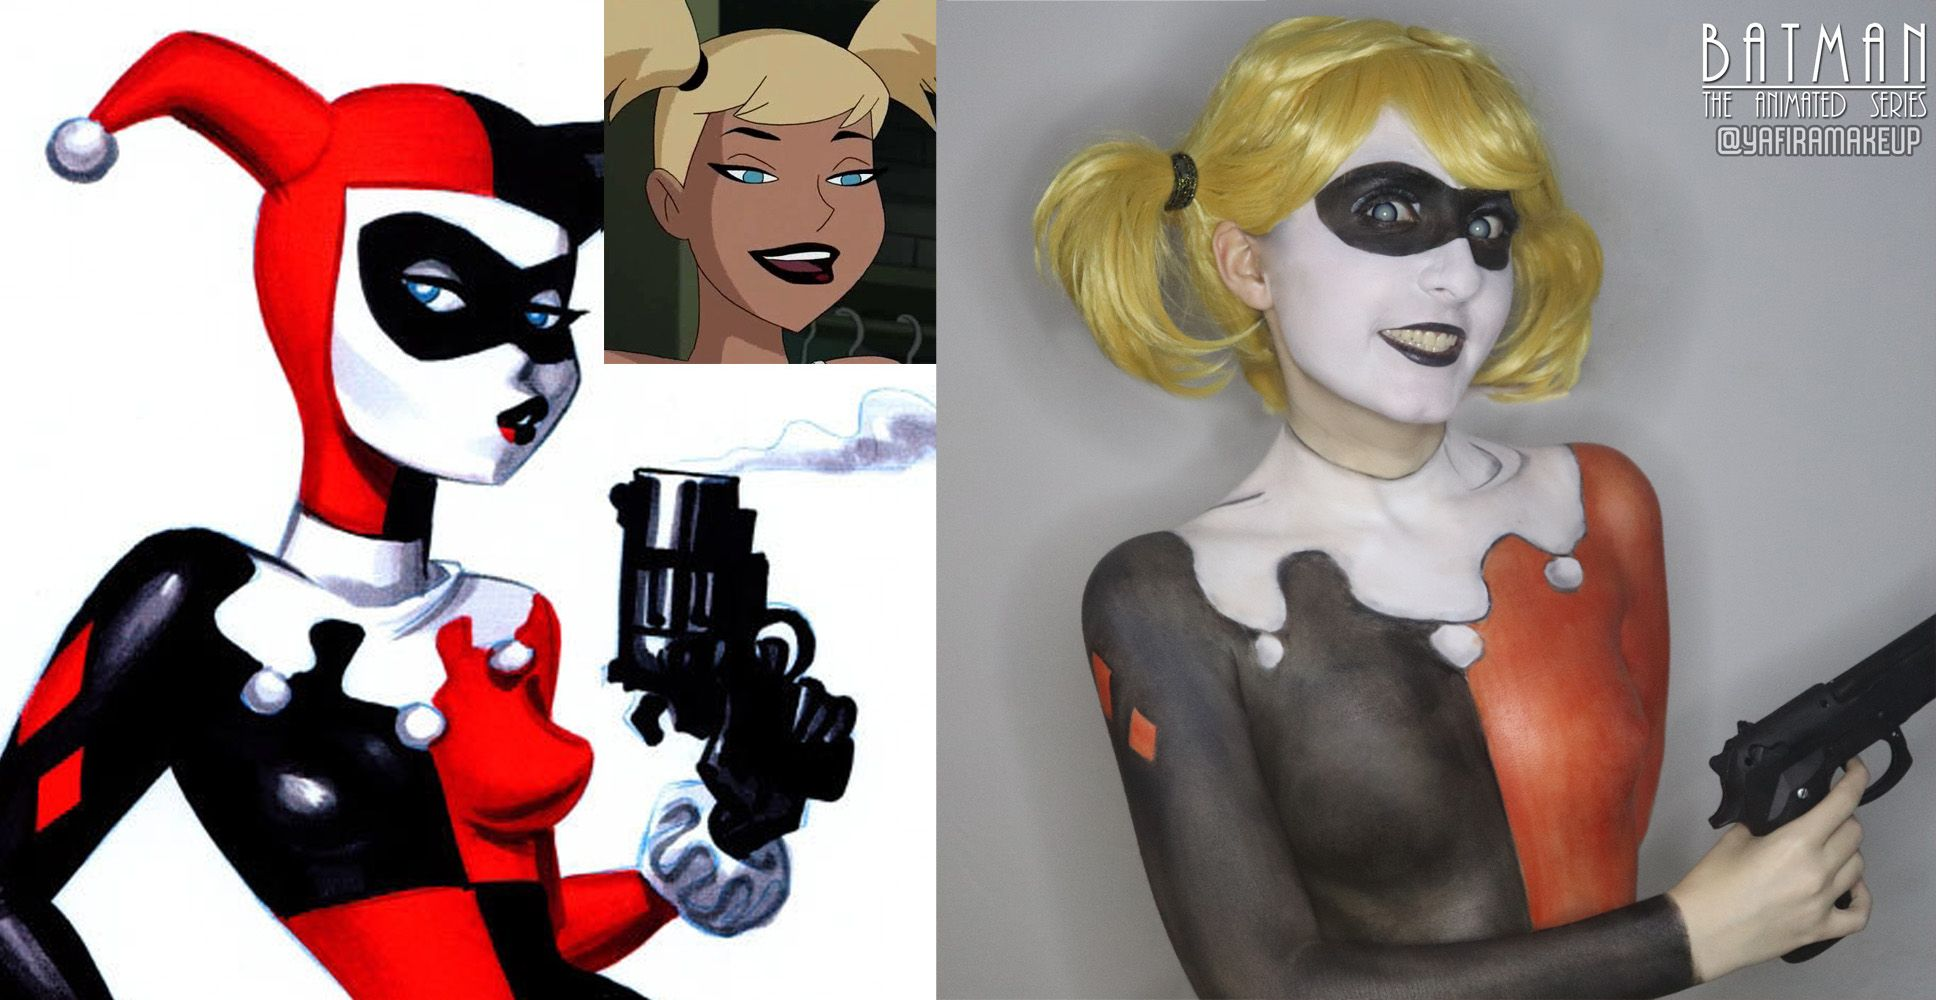 Harley Quinn Body Paint http://geekxgirls.com/article.php